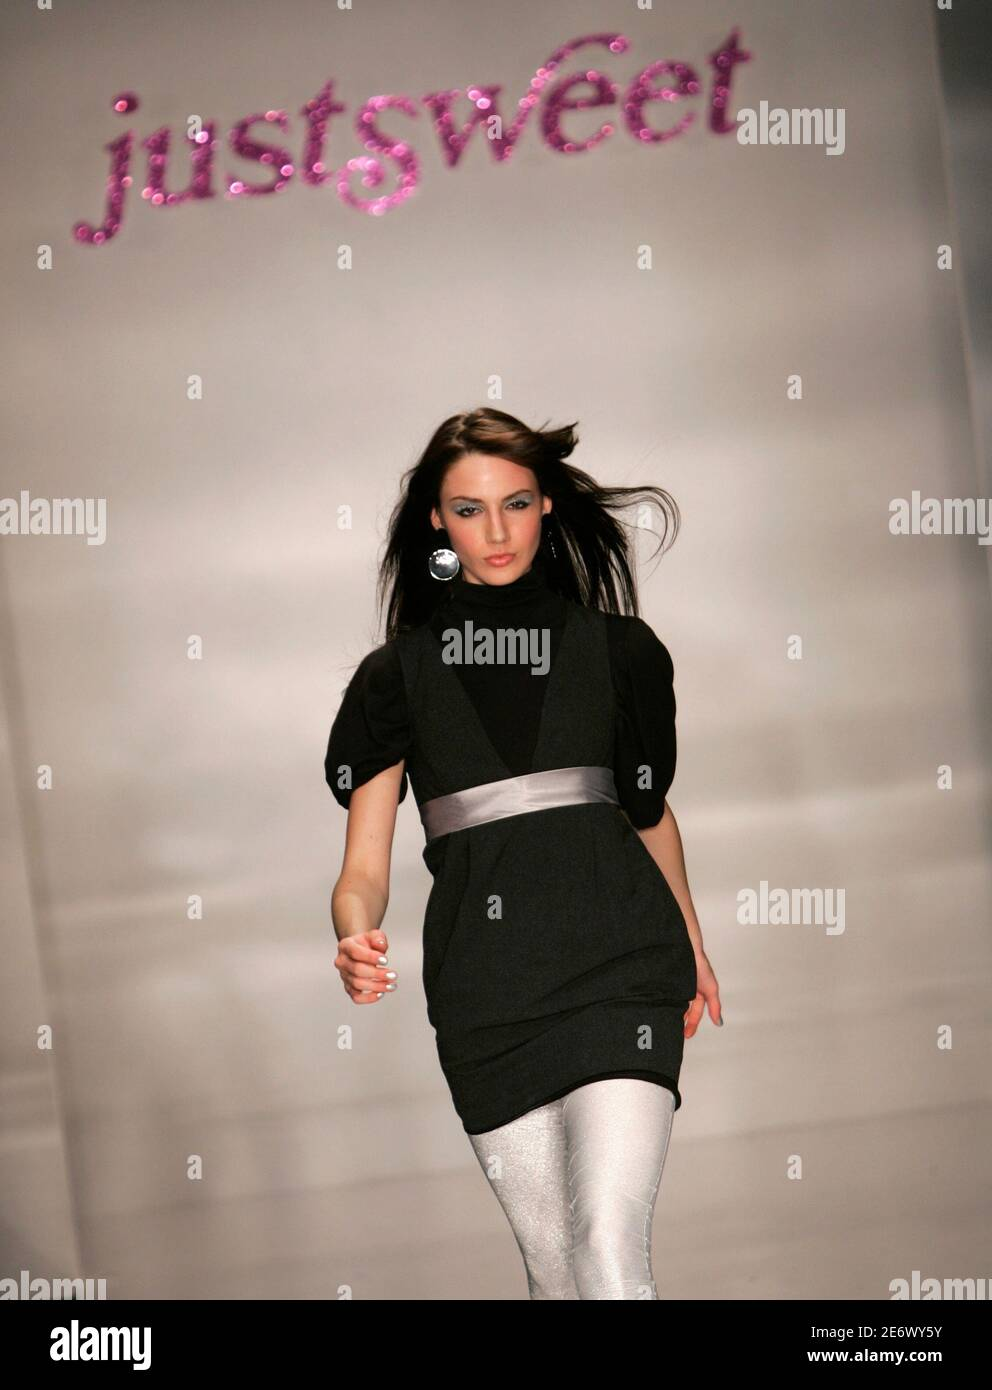 A model presents a creation from the Justsweet creation by Jennifer Lopez during Fashion Week in Miami Beach, Florida, March 23, 2006. Photo taken March 23, 2007.   REUTERS/Carlos Barria (UNITED STATES) Foto de stock